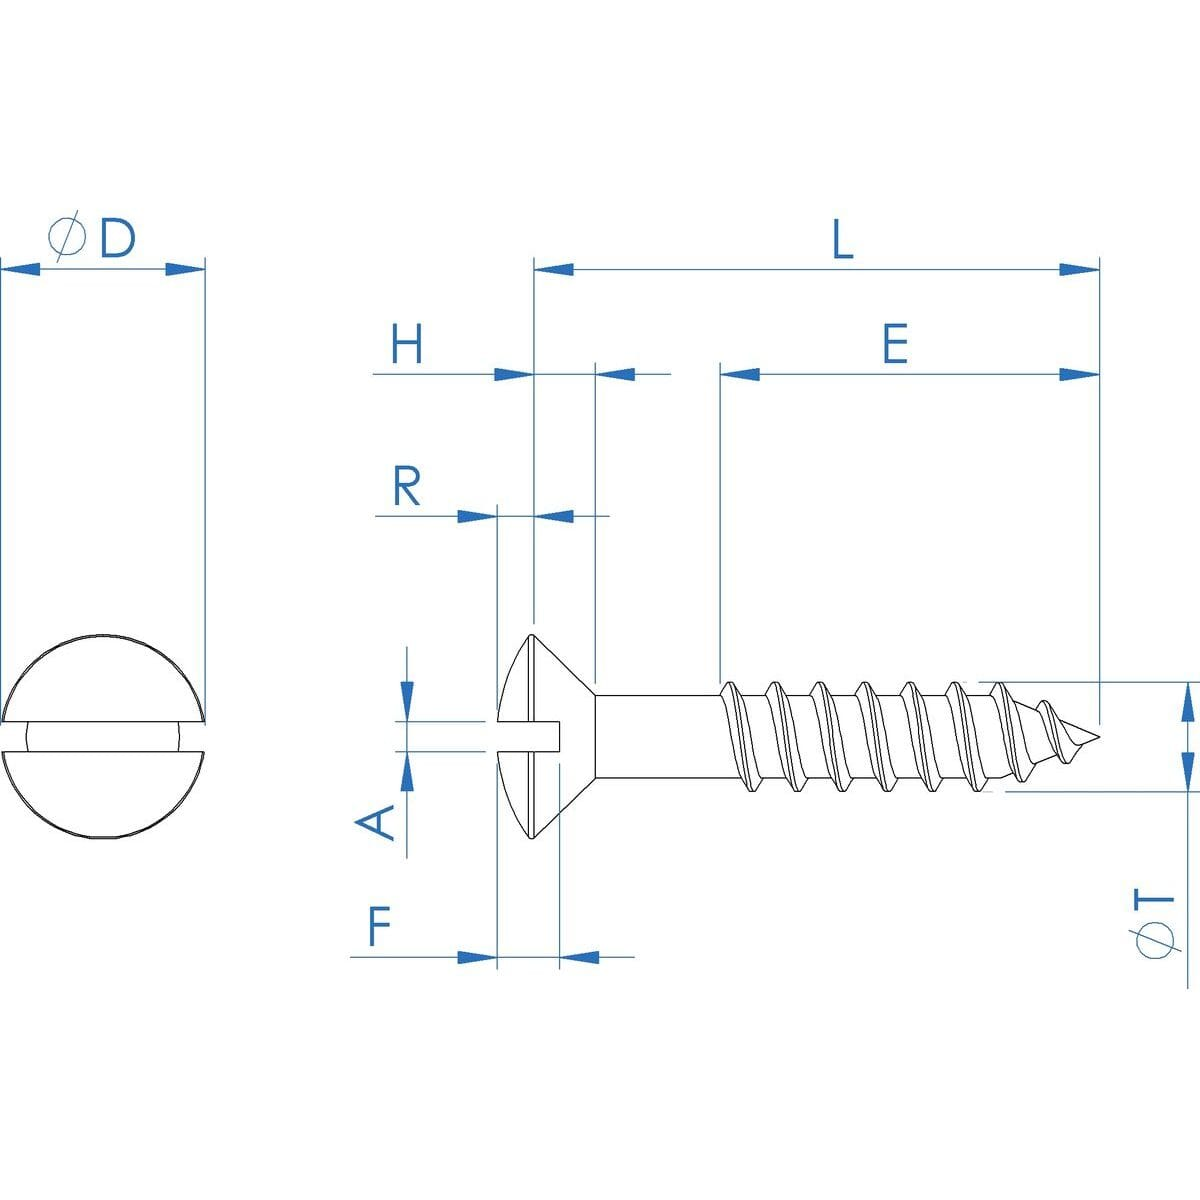 No.8 (4mm) x 20mm Slotted Raised Countersunk Wood Screws (DIN 95) - Black Stainless Steel (A2) Drawing